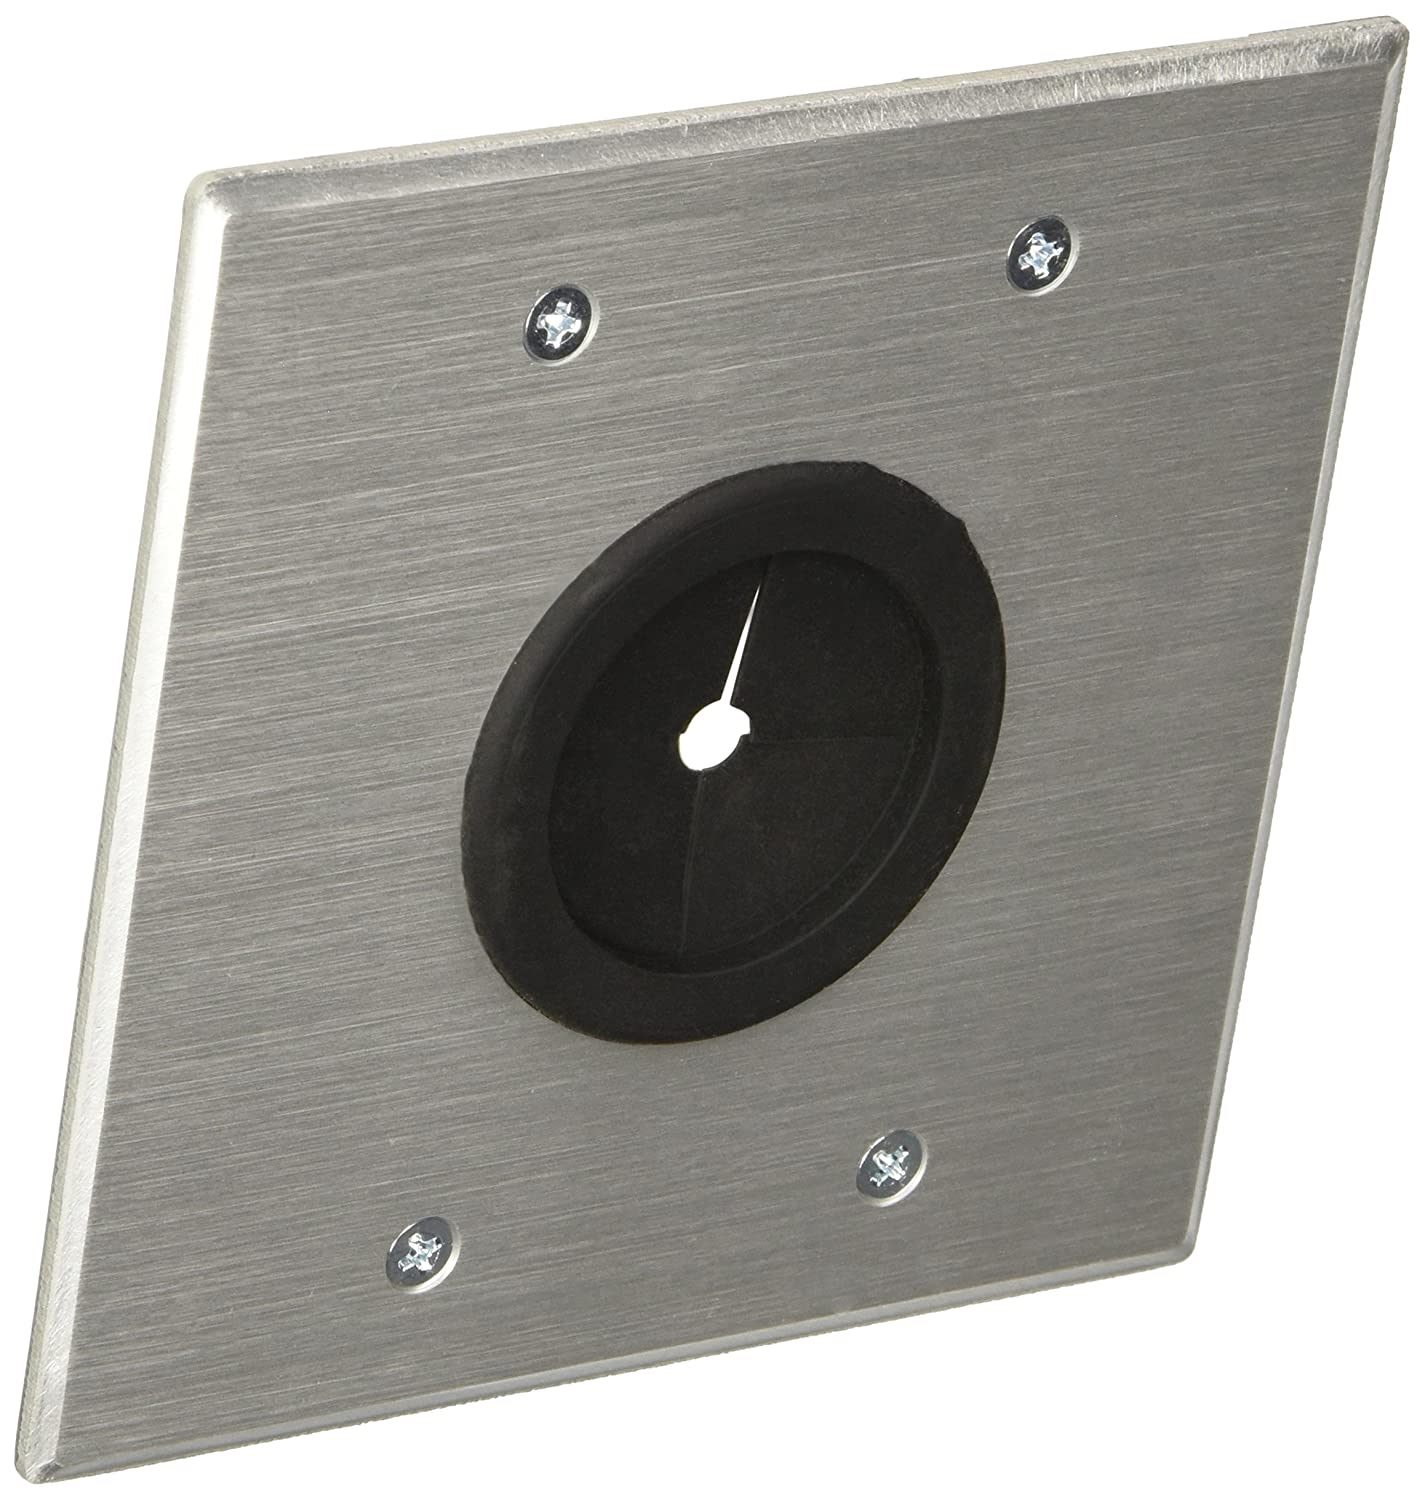 Amazon.com: C2G/Cables to Go 40546 Double Gang Grommet Wall Plate ...